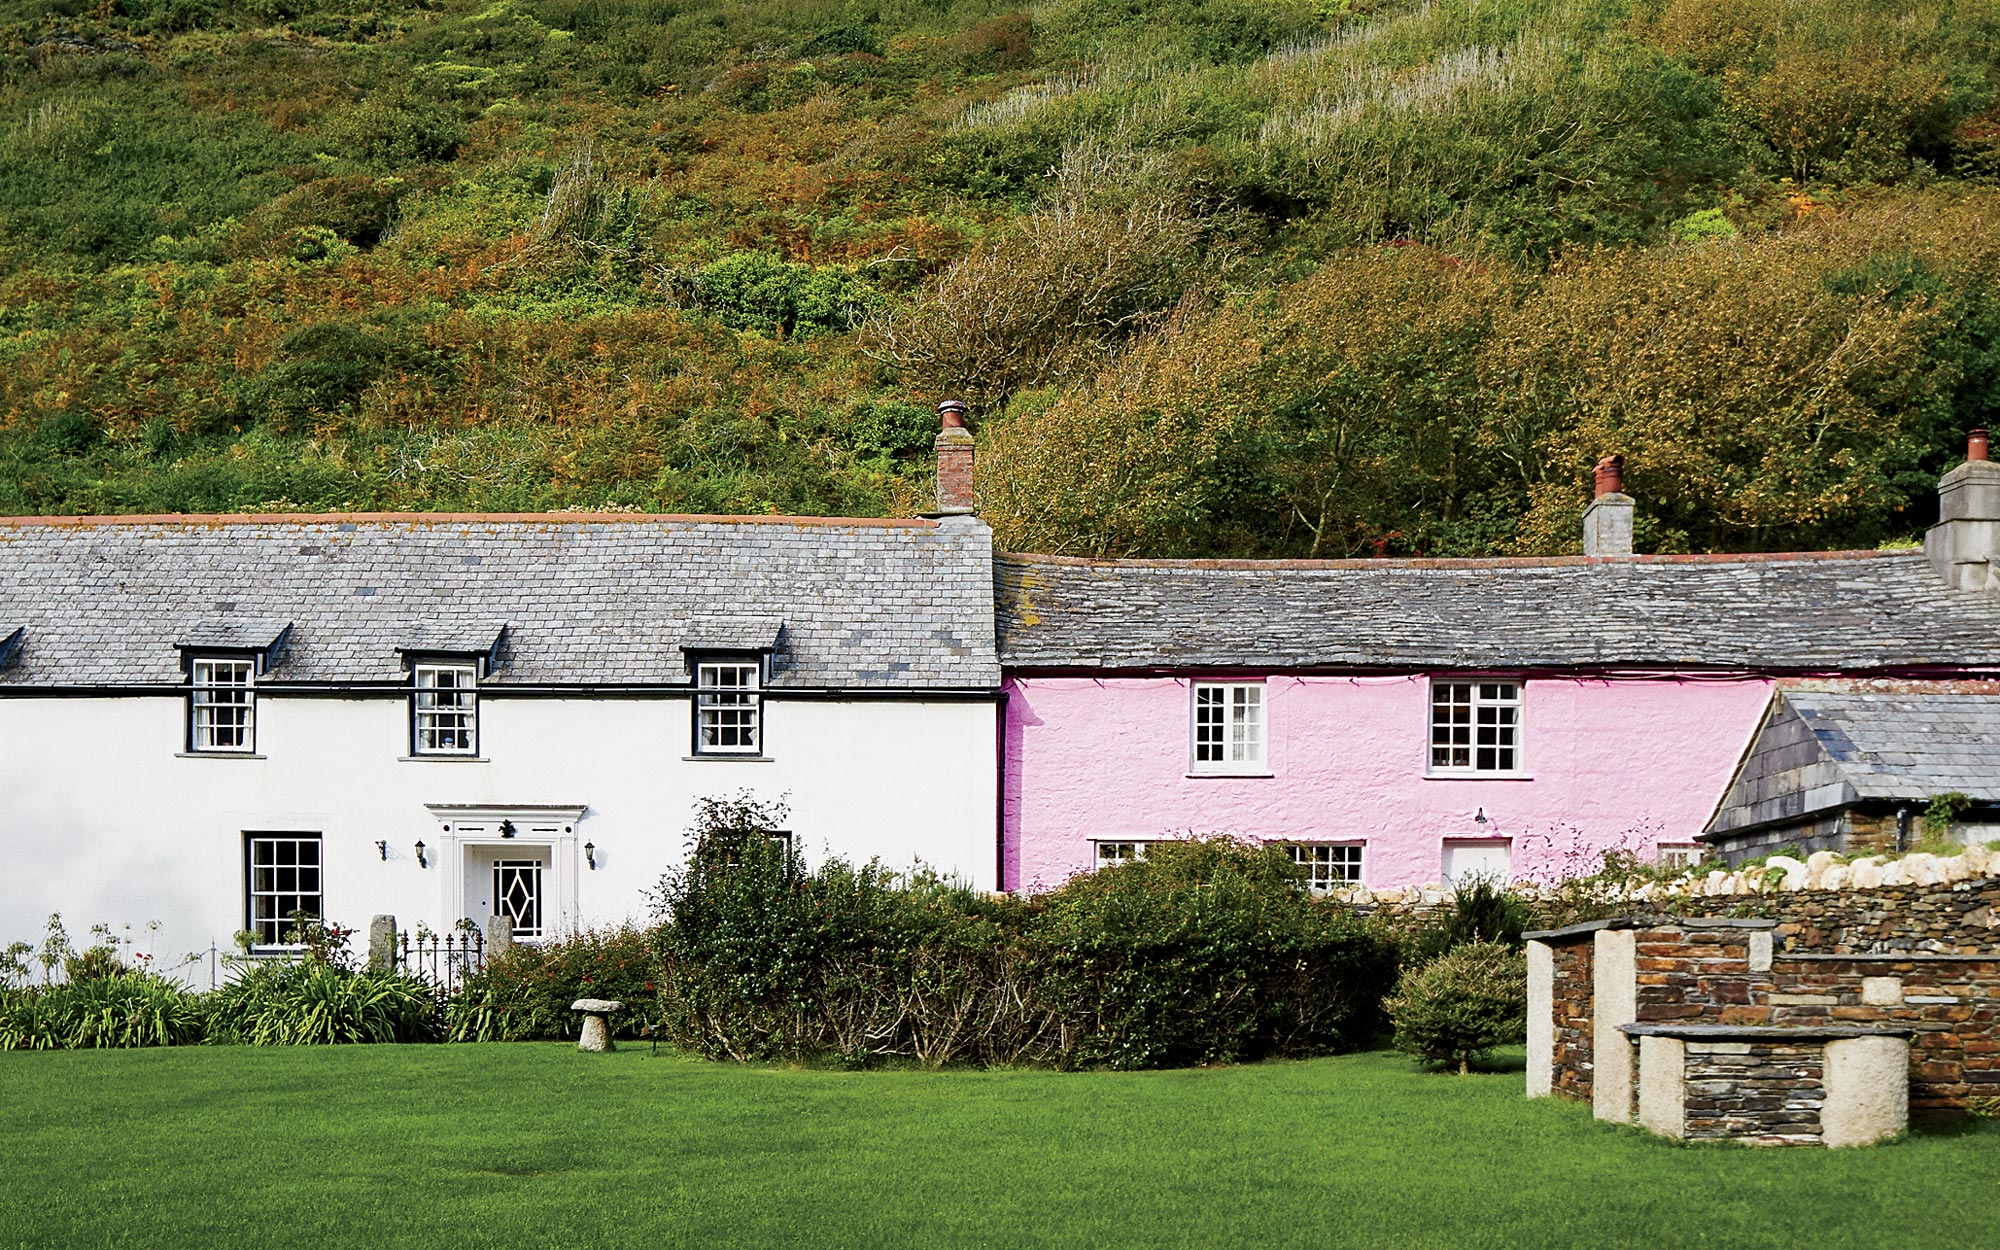 Cornwall is Becoming England's Next Food Destination